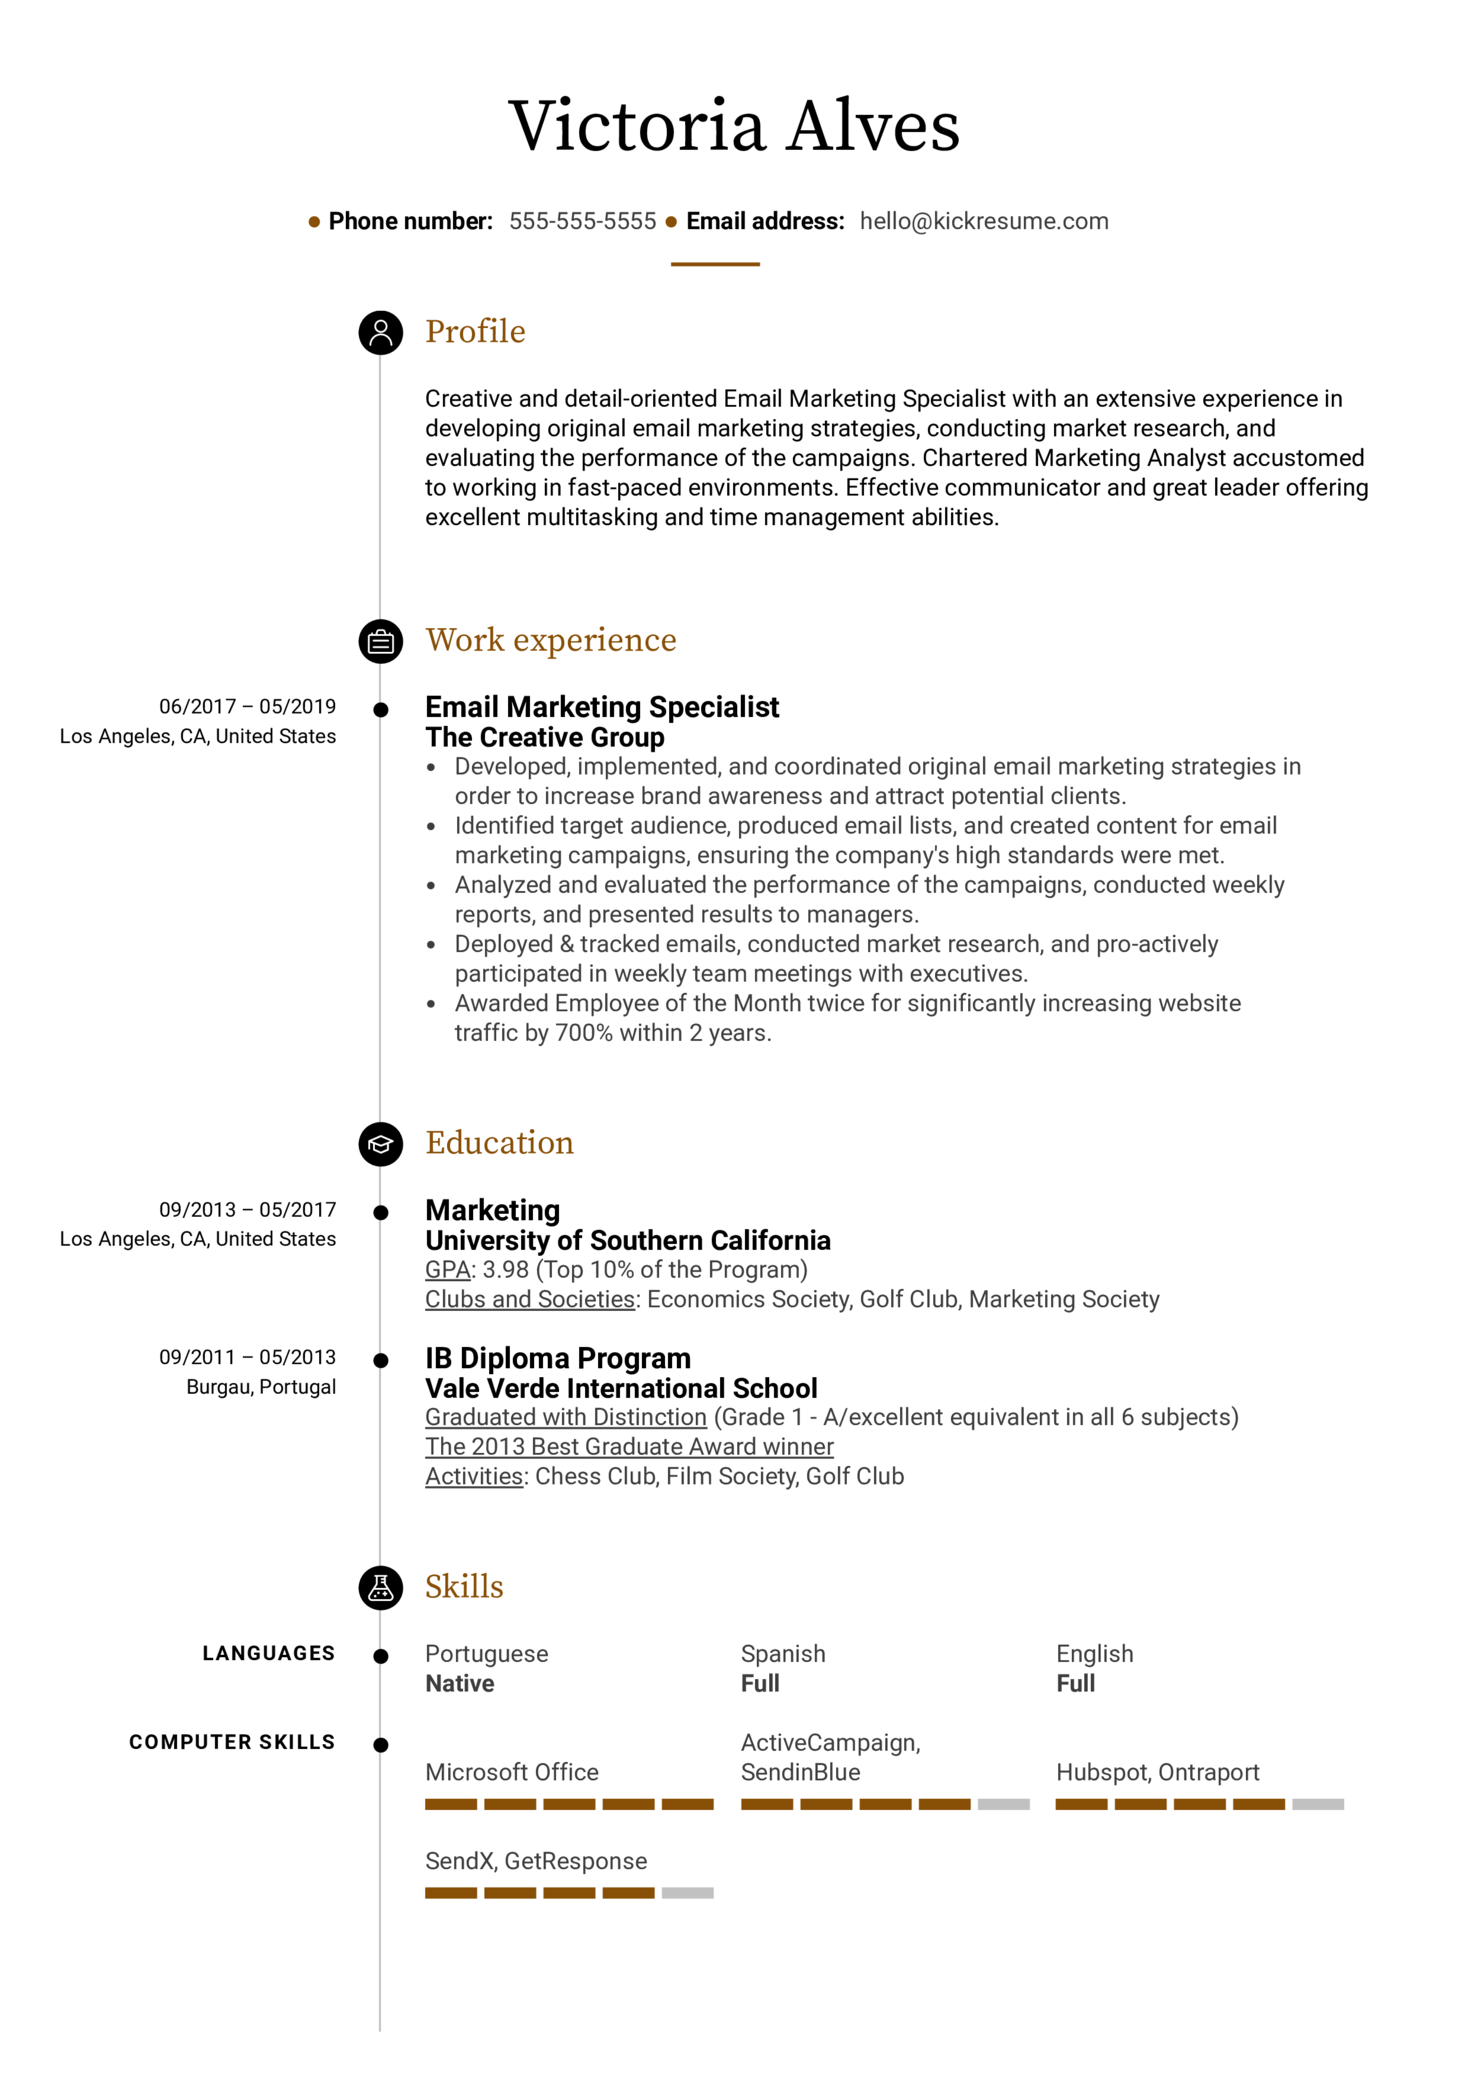 Email Marketing Specialist Resume Example (Part 1)